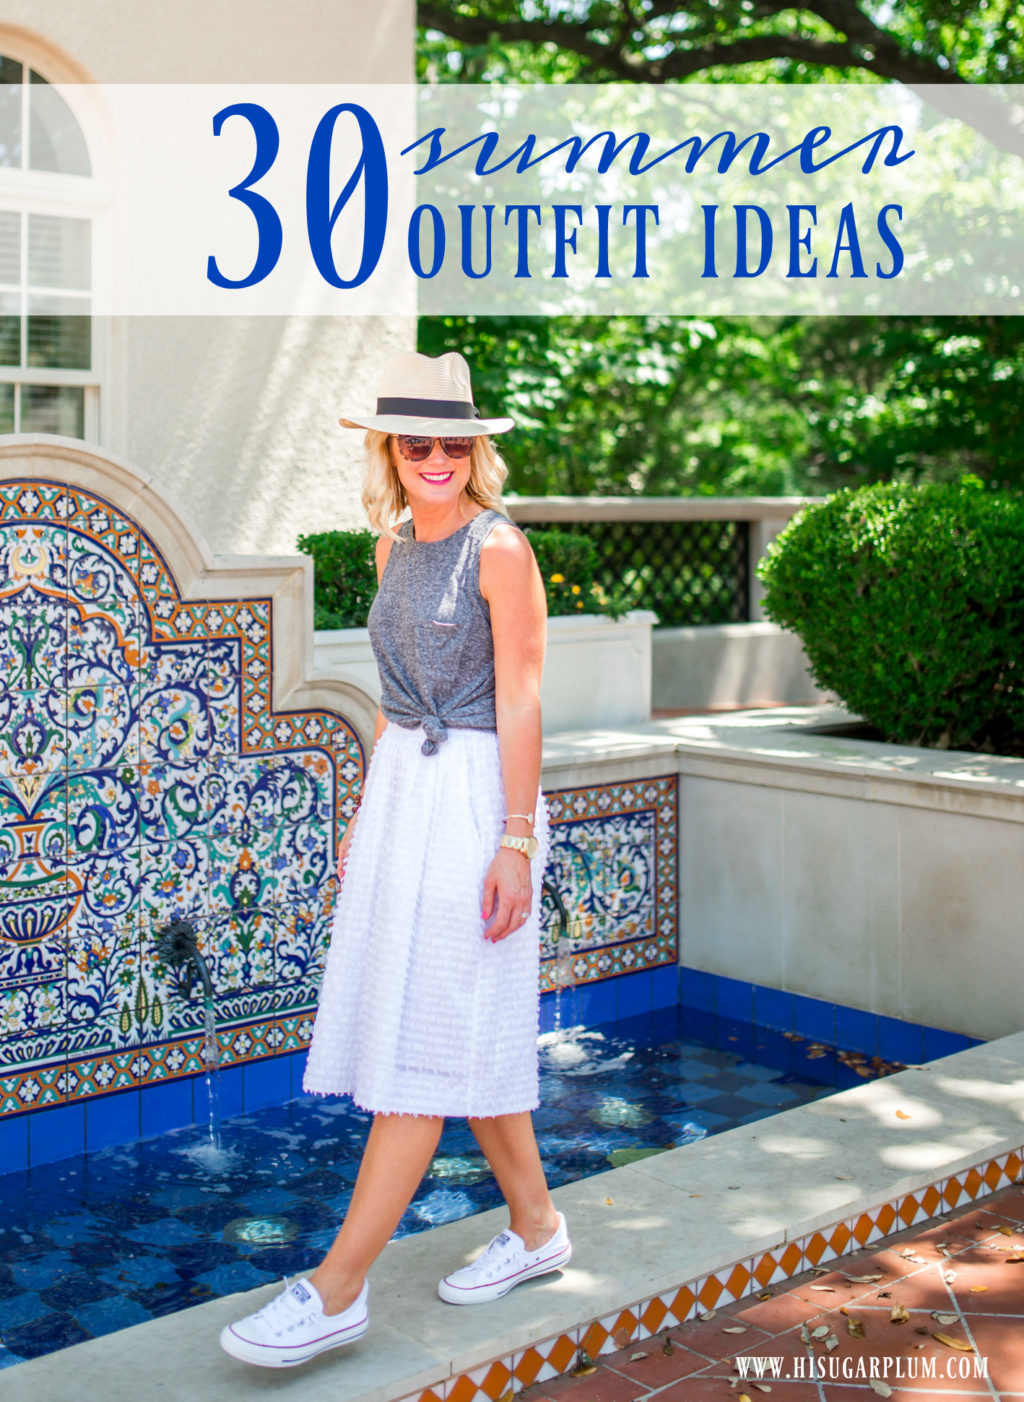 30-Summer-Outfit-Ideas